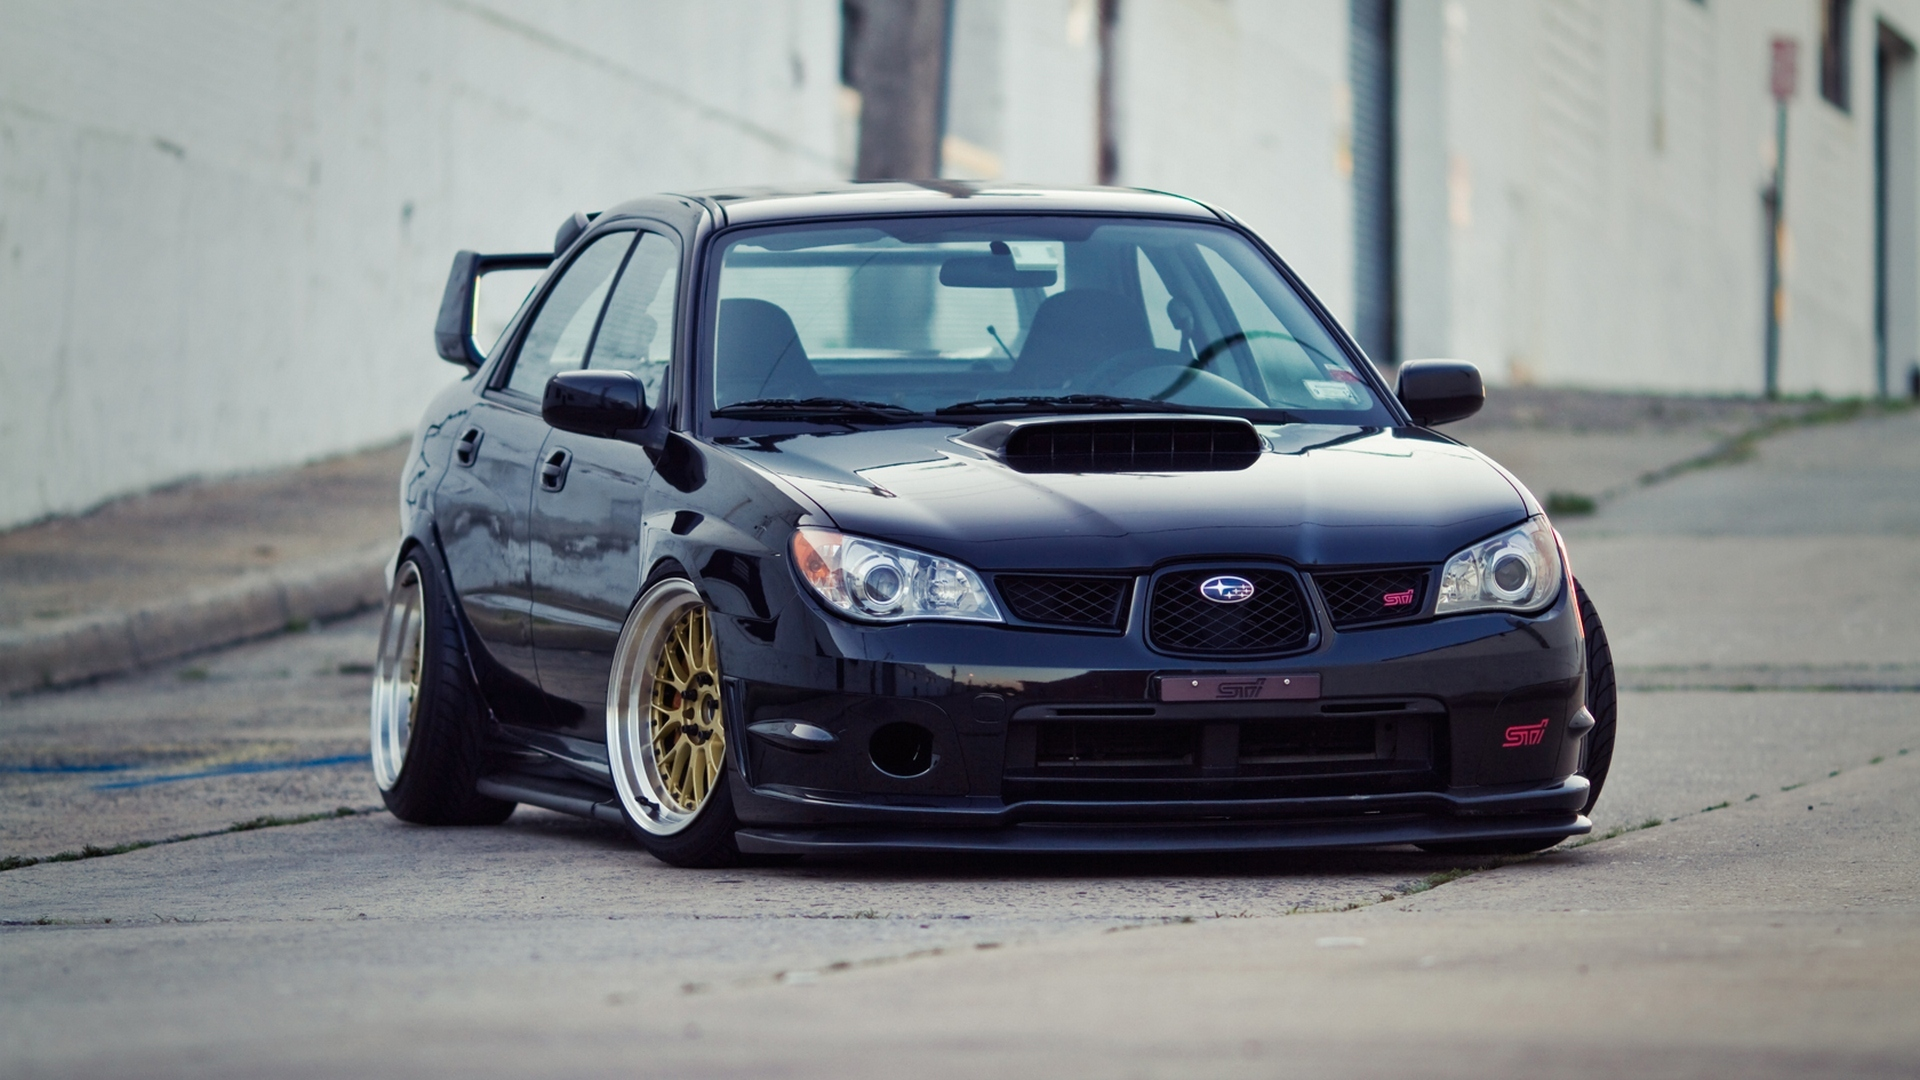 Subaru Impreza STI Slammed Low Japan Car Tuning wallpaper 1920x1080 1920x1080